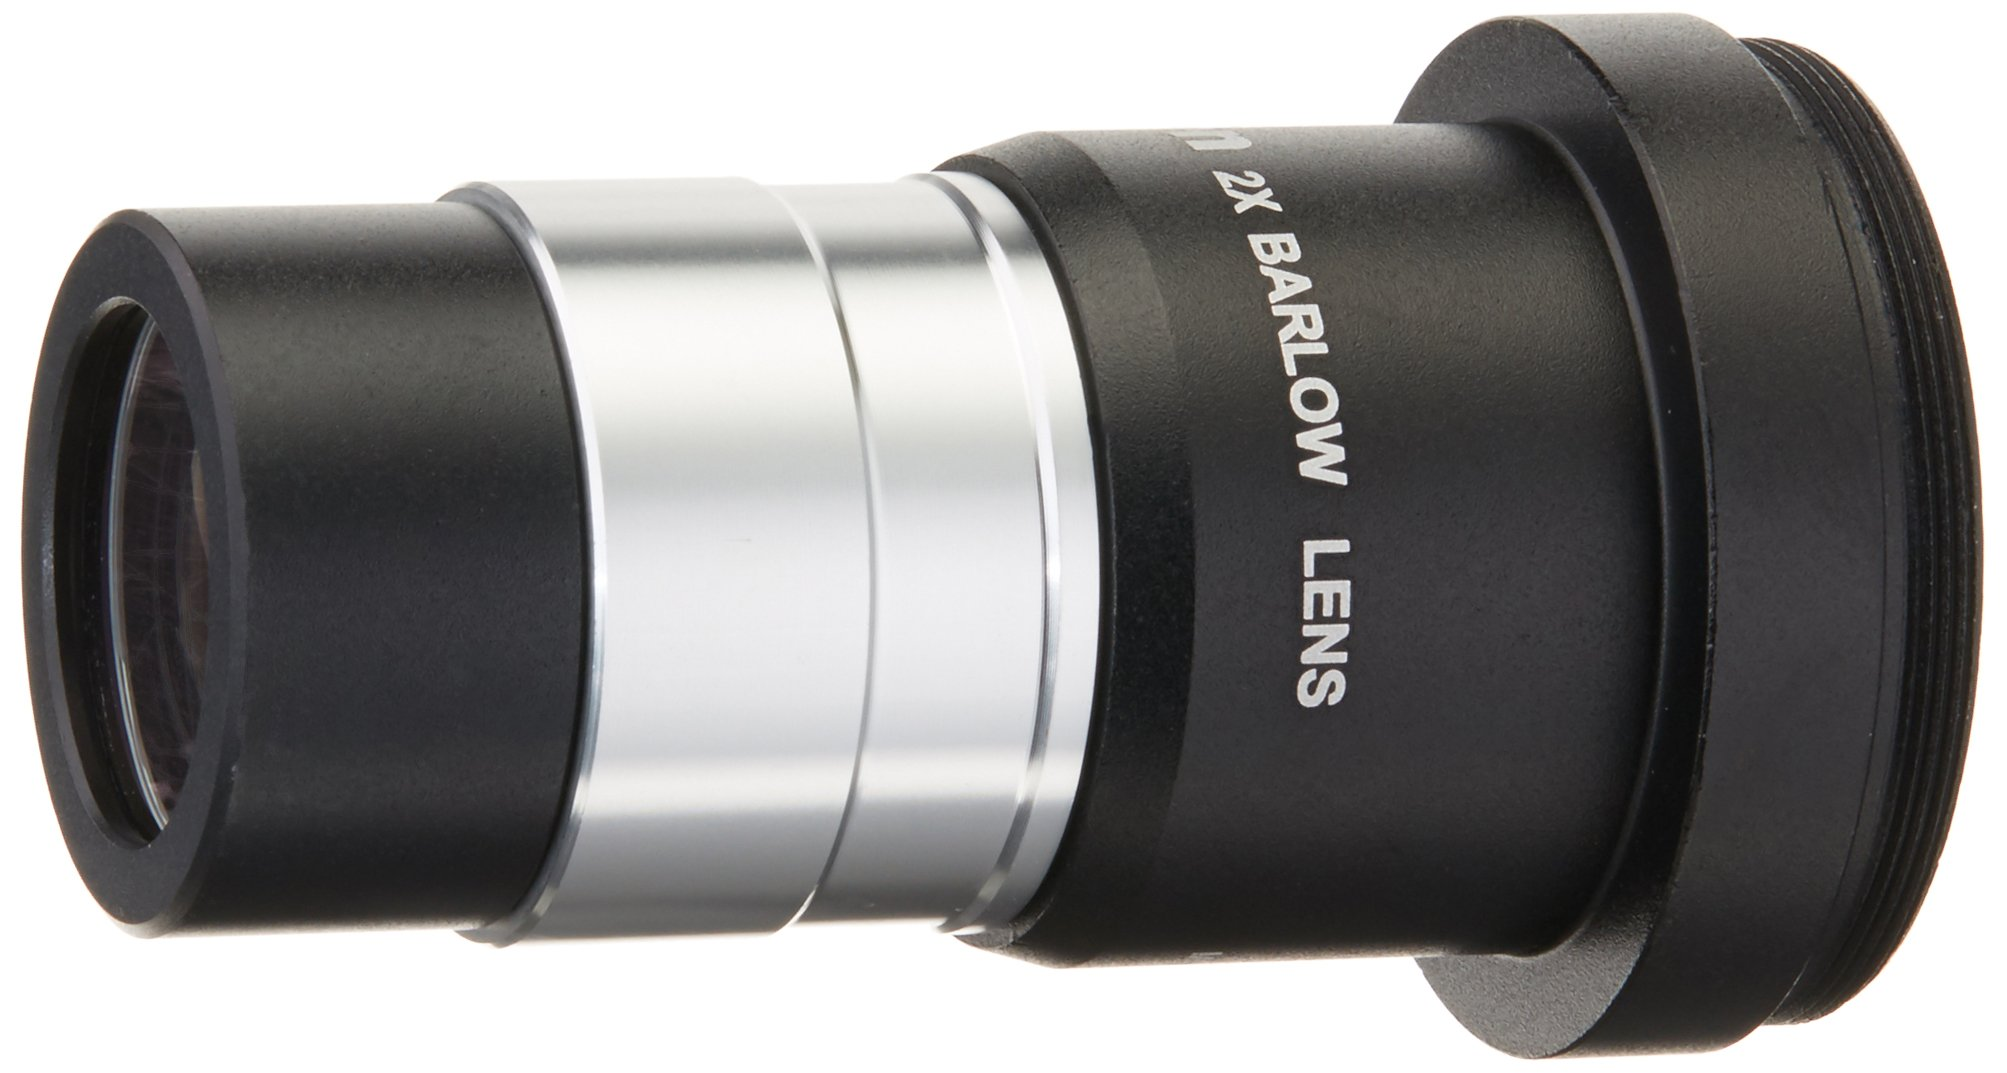 Vixen 2x Barlow Lens T (1 1/4 inch) 3907 by Vixen Optics